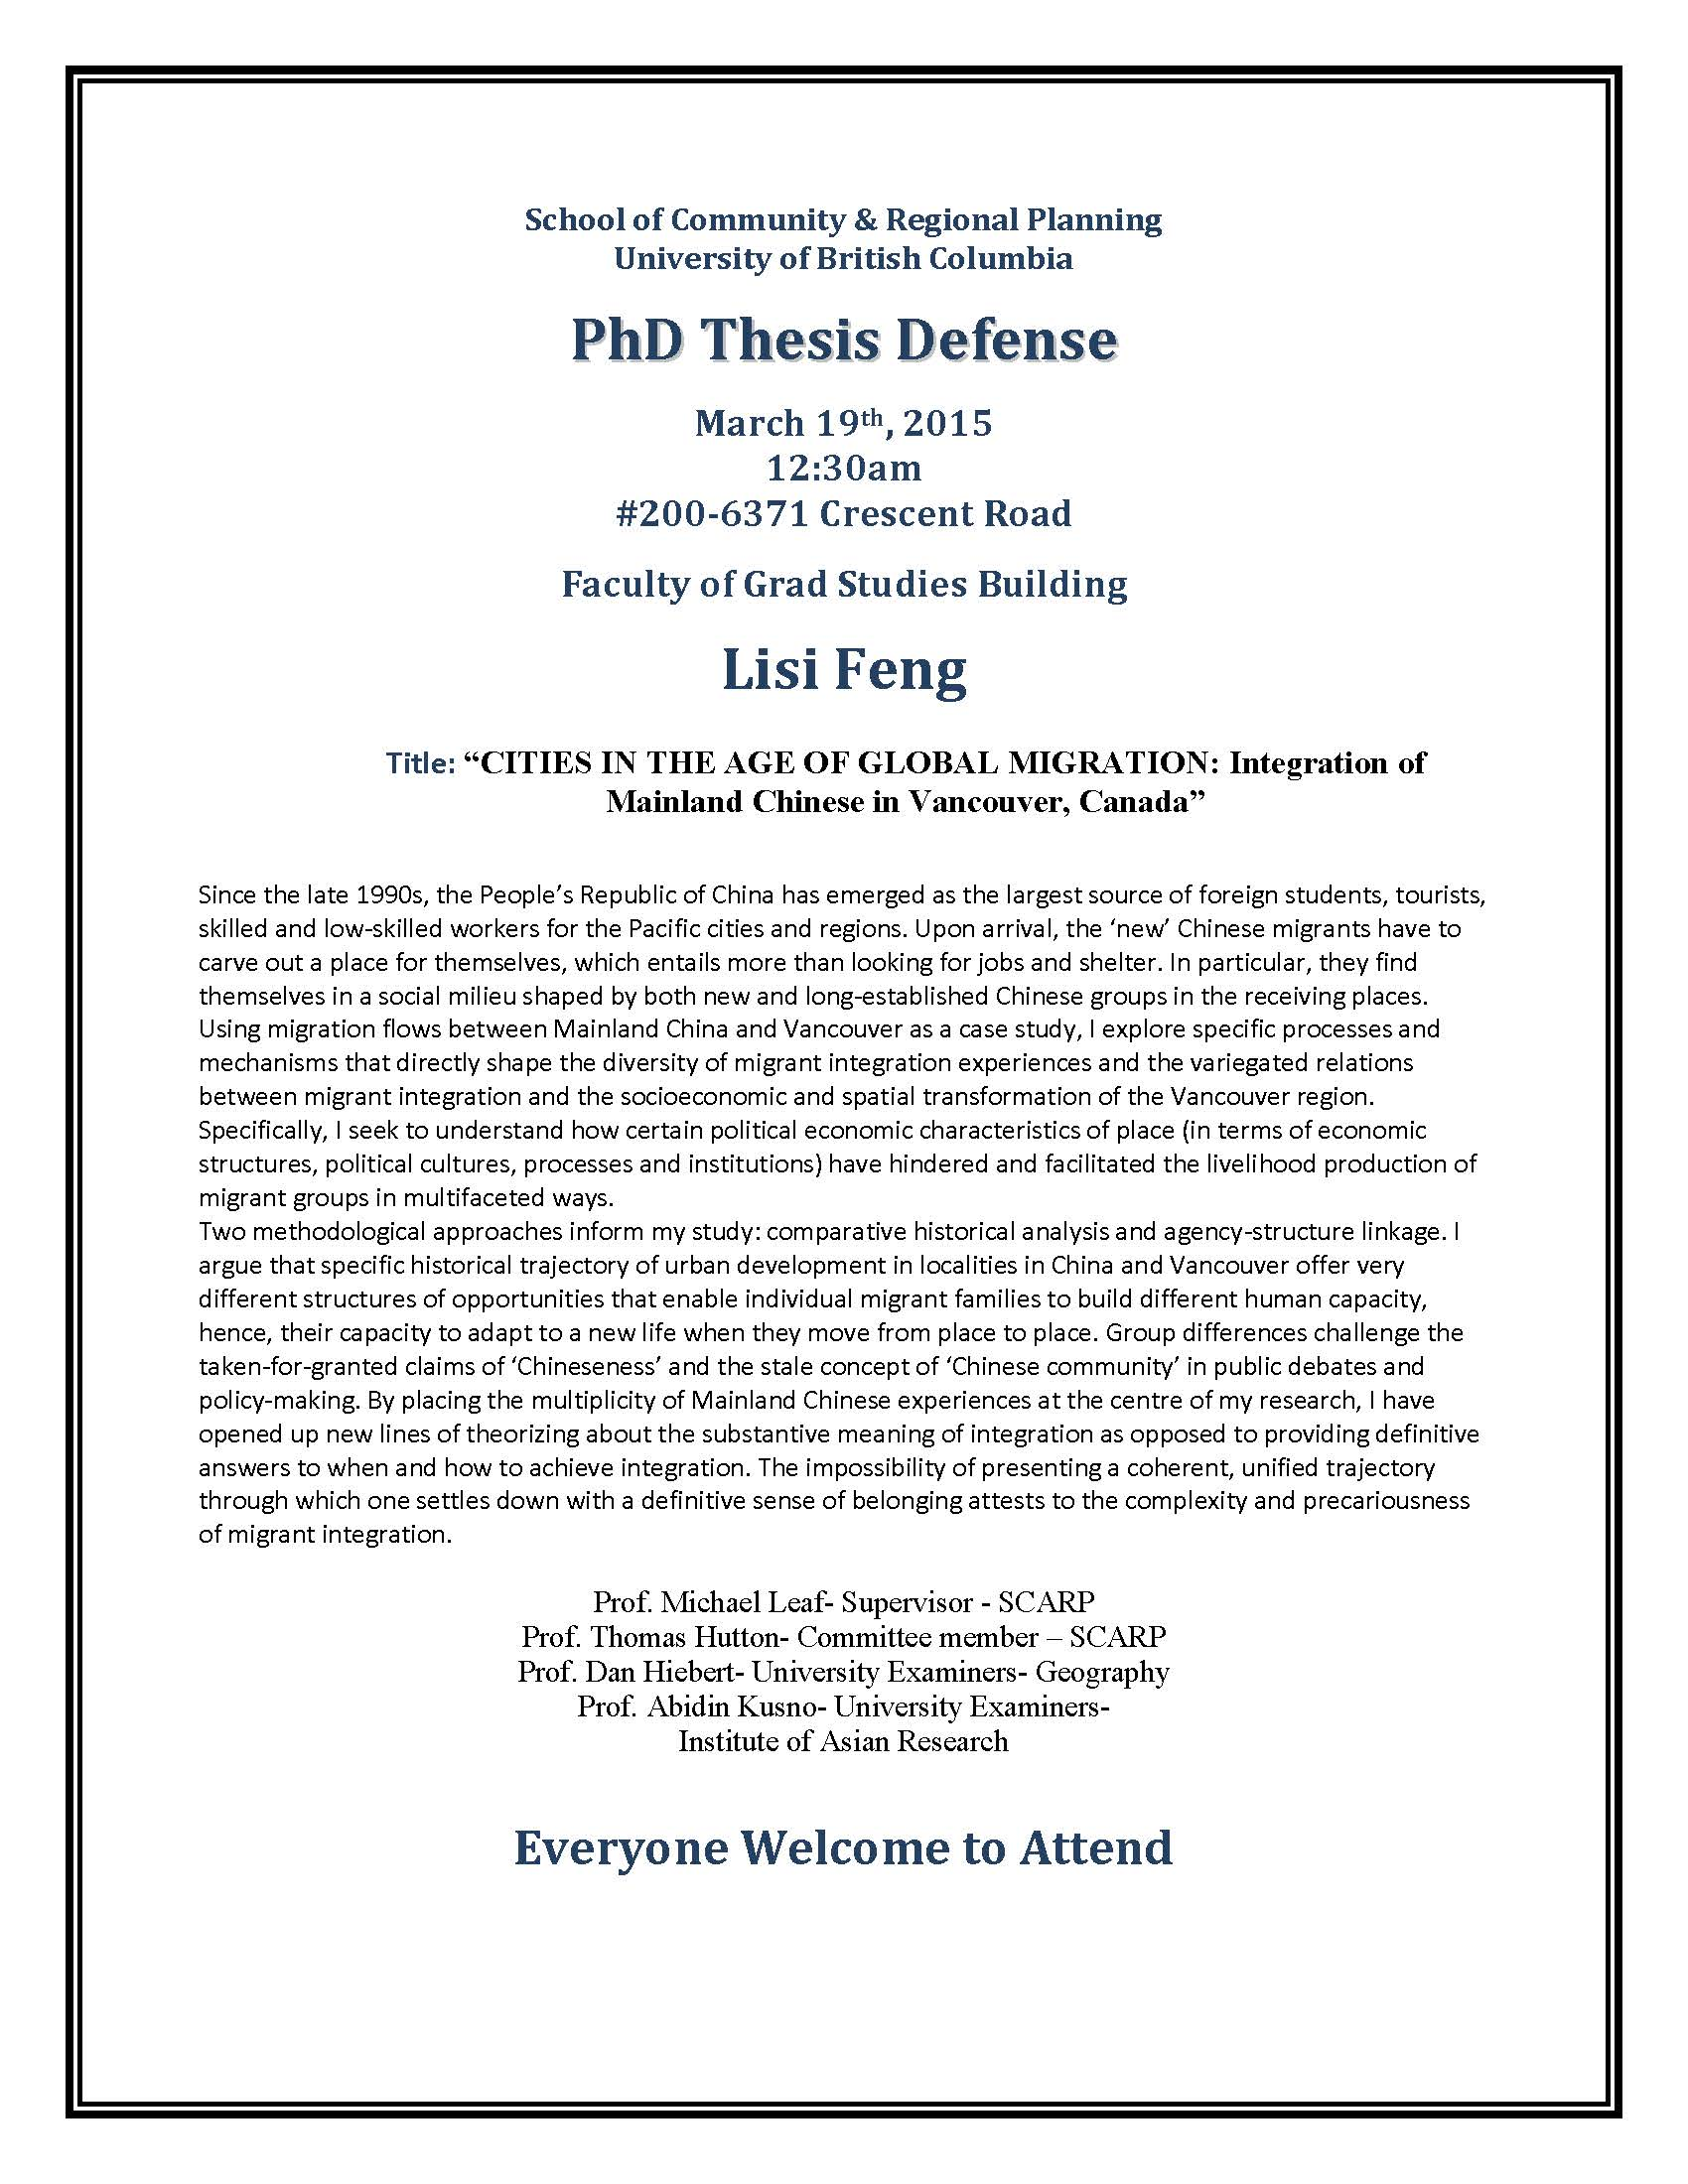 defence doctoral thesis The dissertation proposal defense 2009 can only choose option ii for the dissertation proposal format (phd committee the dissertation proposal and defensedocx.